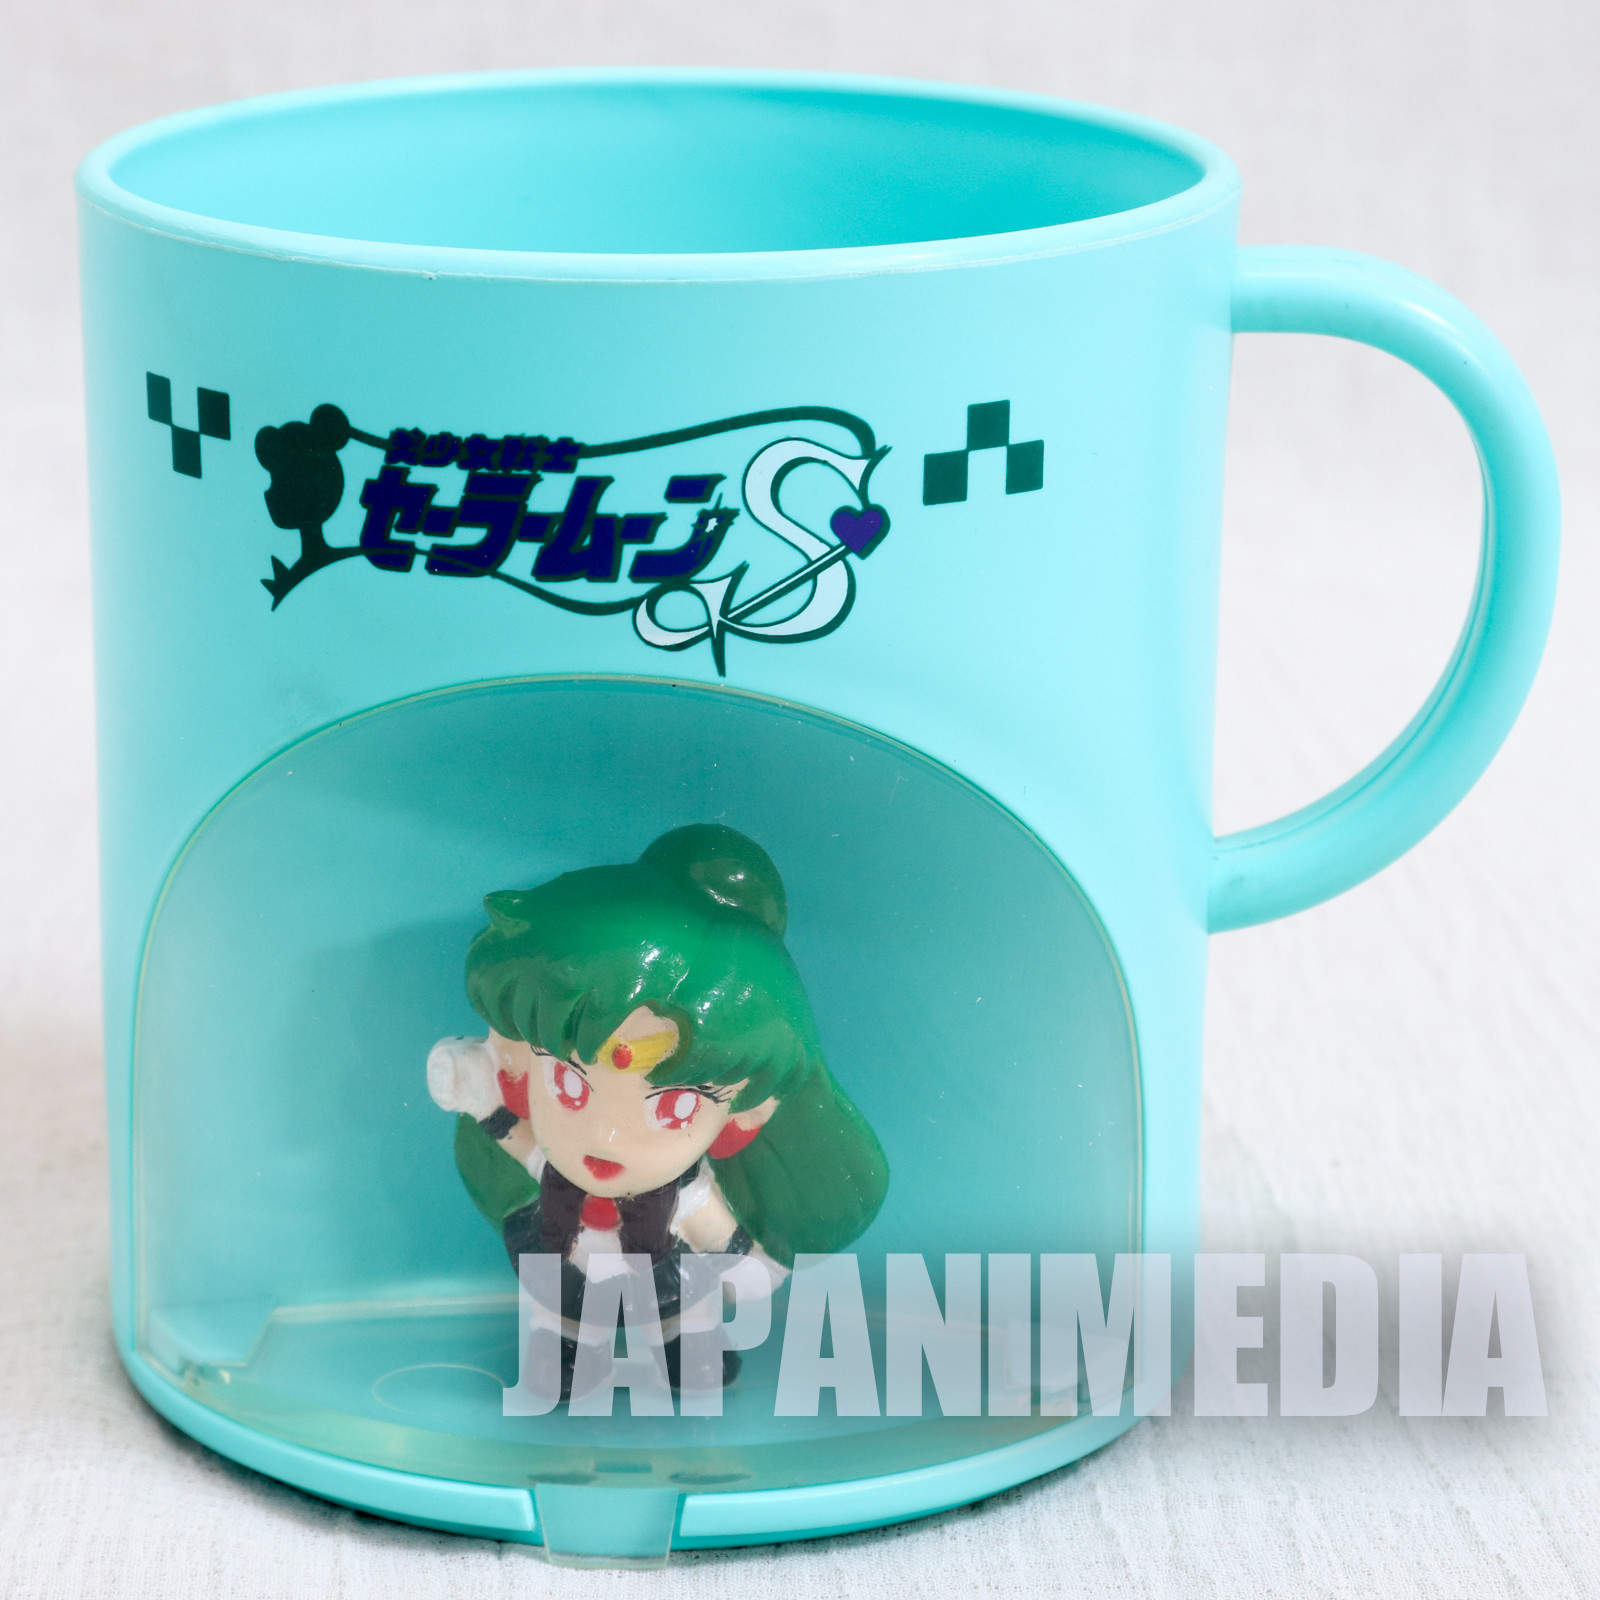 Sailor Moon S Sailor Pluto (Setsuna Meiou) Figure in Plastic Mug Banpresto 1994 JAPAN